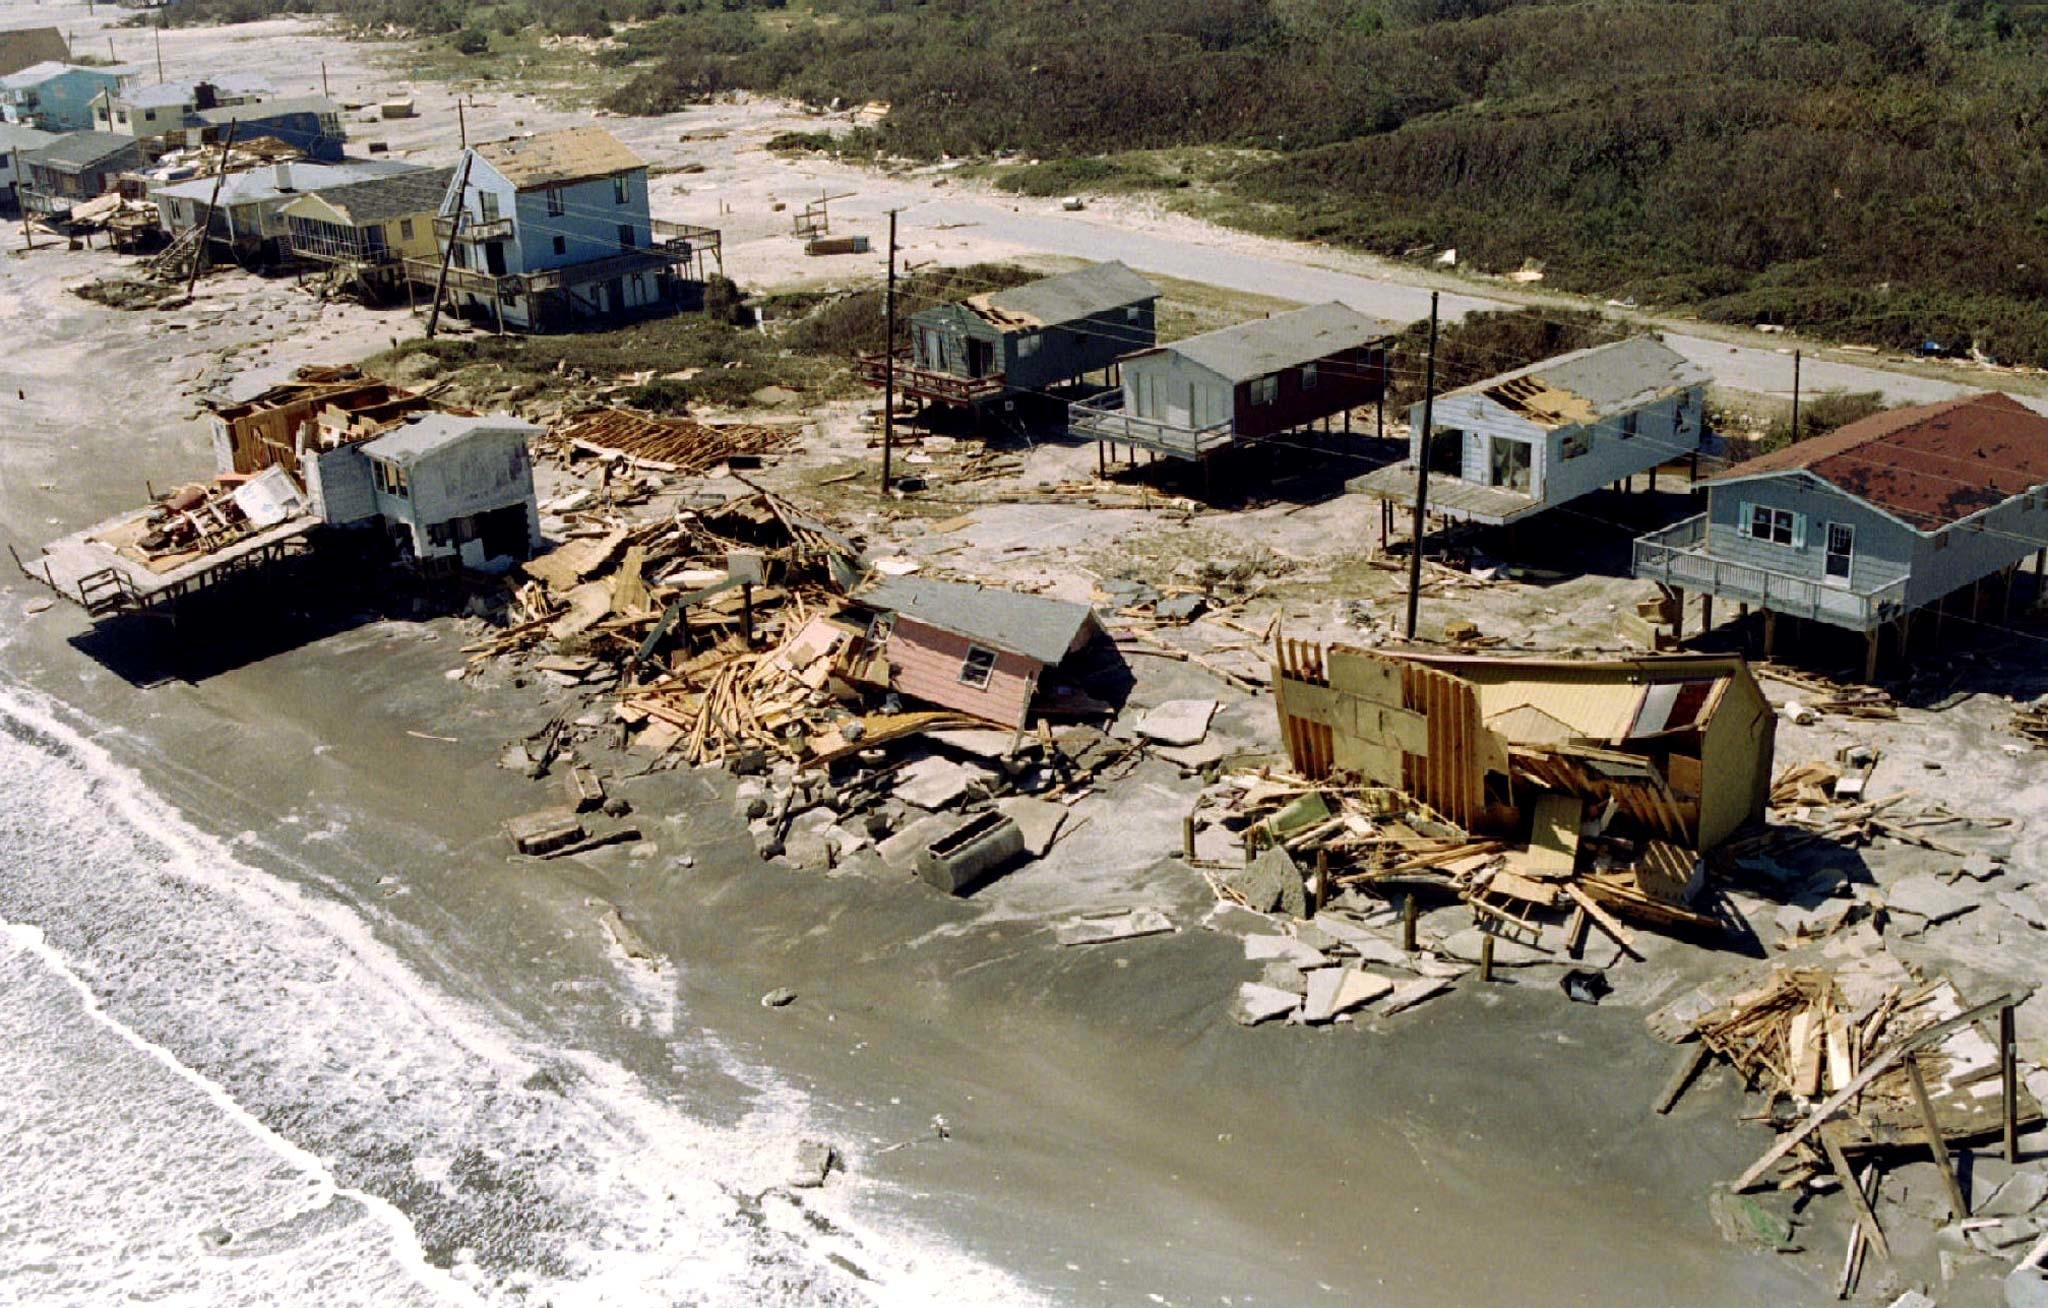 image of the remains of beach front houses lie on the sand in Surf City, North Carolina destroyed by the gale force winds of Hurricane Fran. The brunt of the winds and rain were felt the most by the outer banks islands in North Carolina.